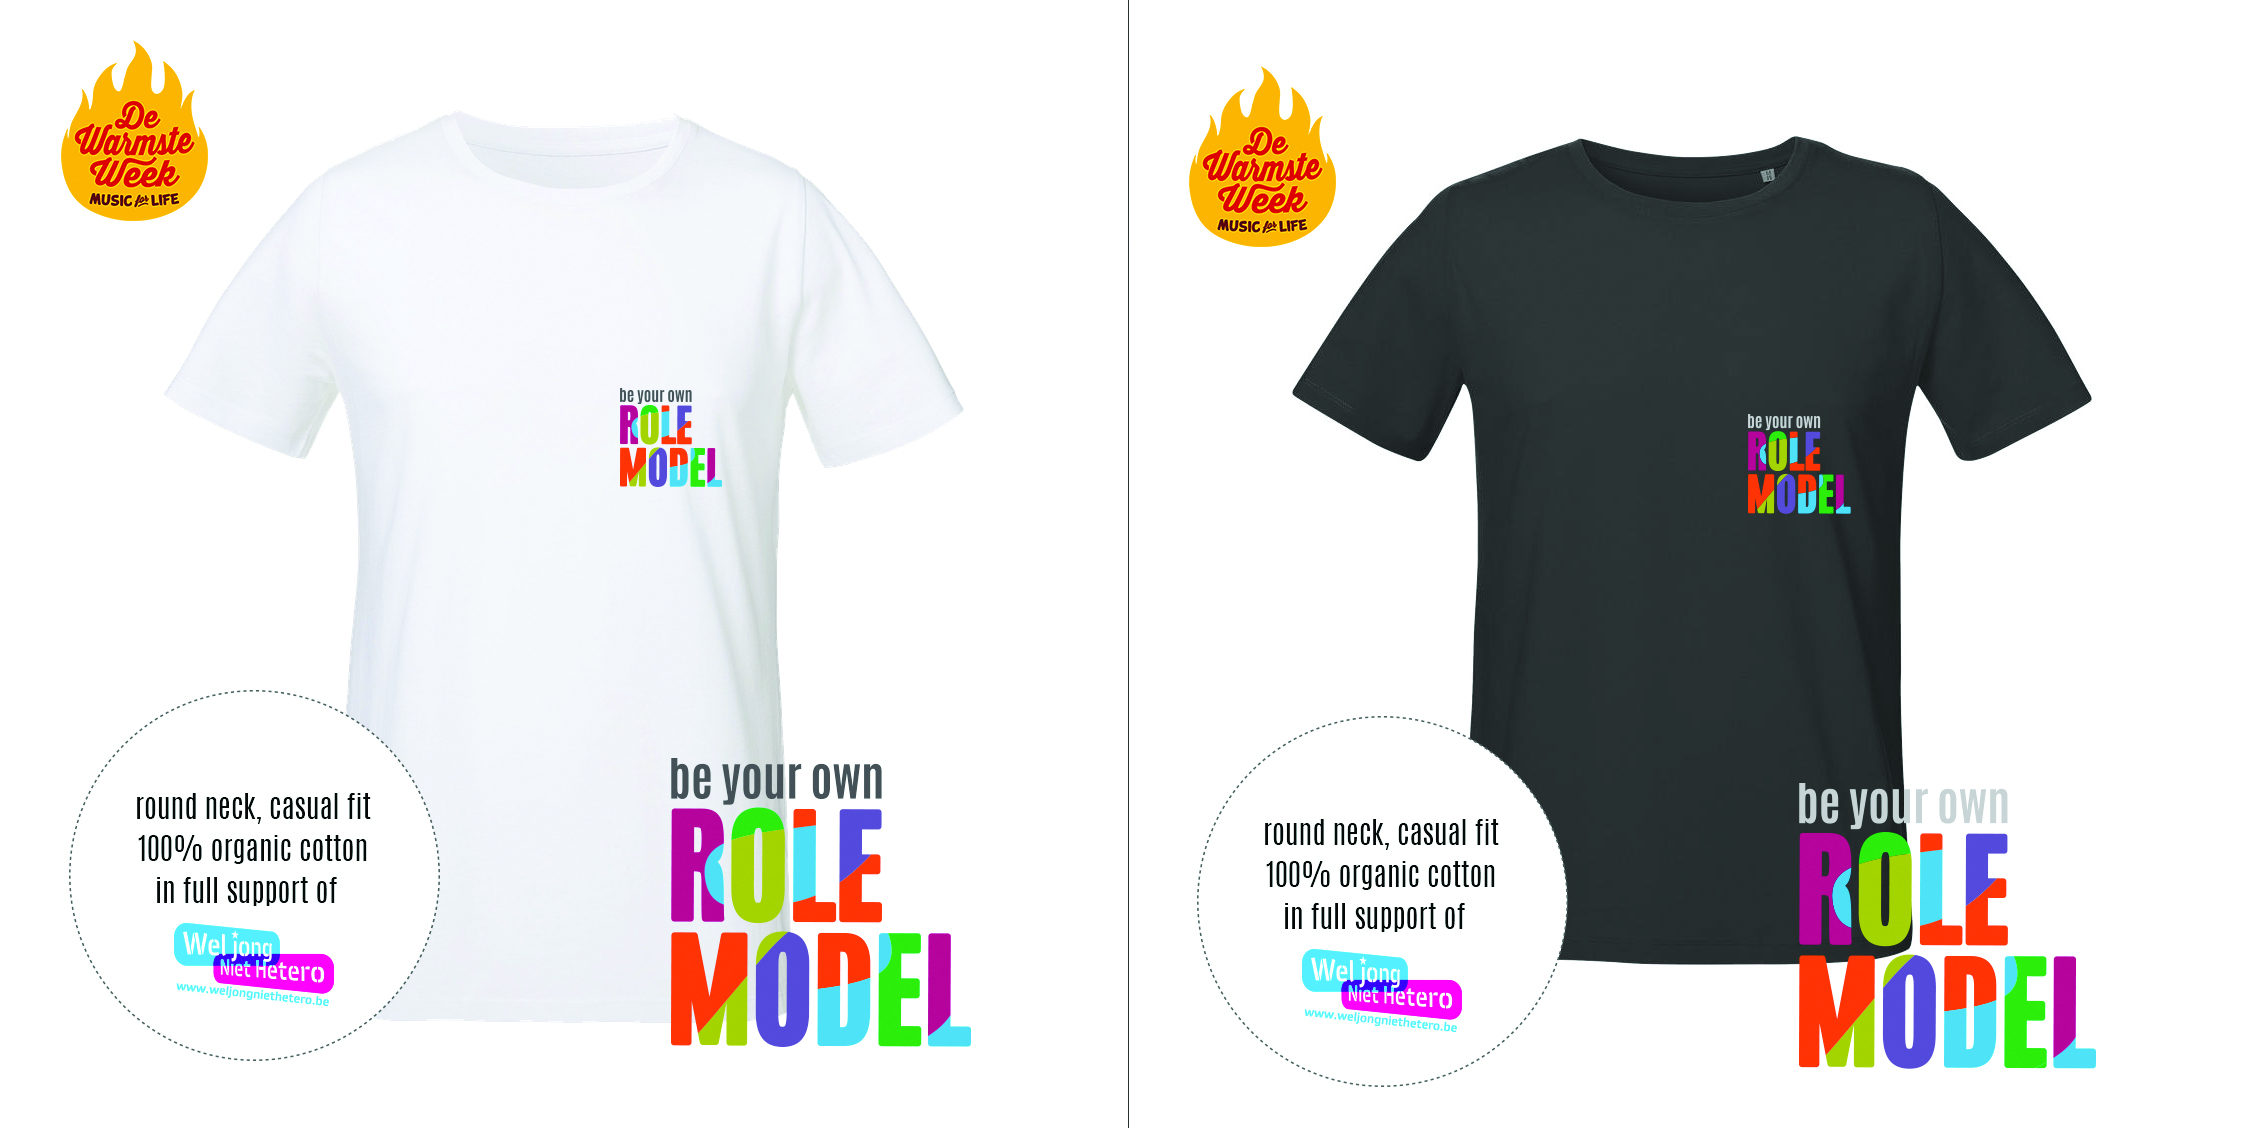 be-your-own-role-model-both-shirts-MFL